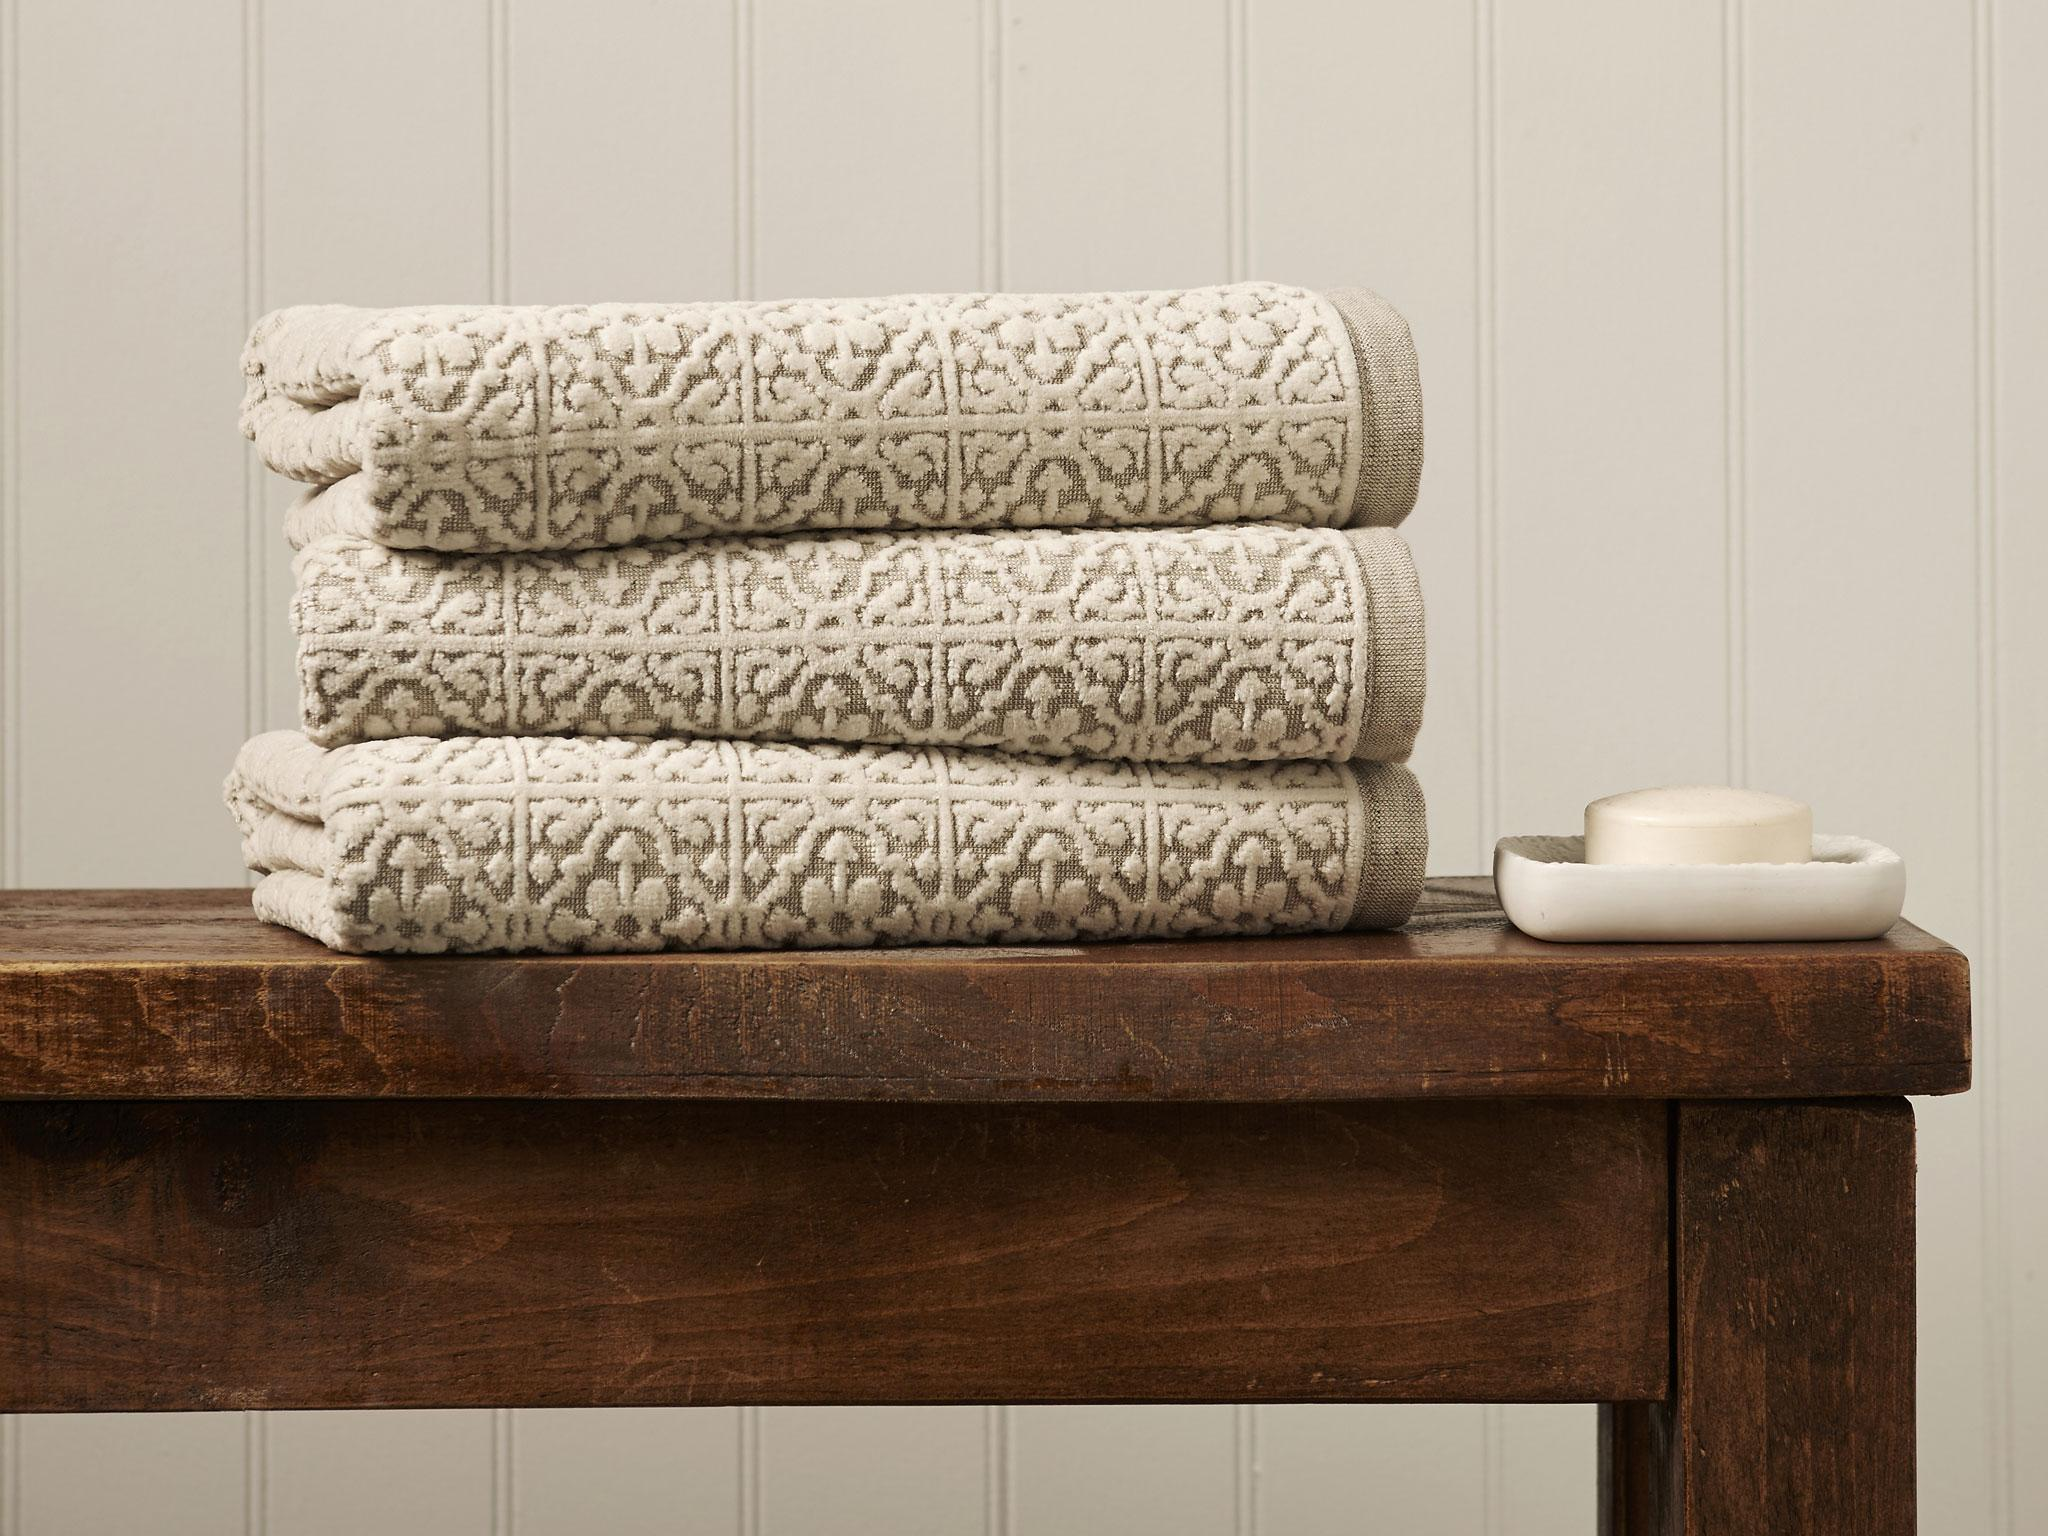 Bathroom floor towels - Bathroom Floor Towels 4